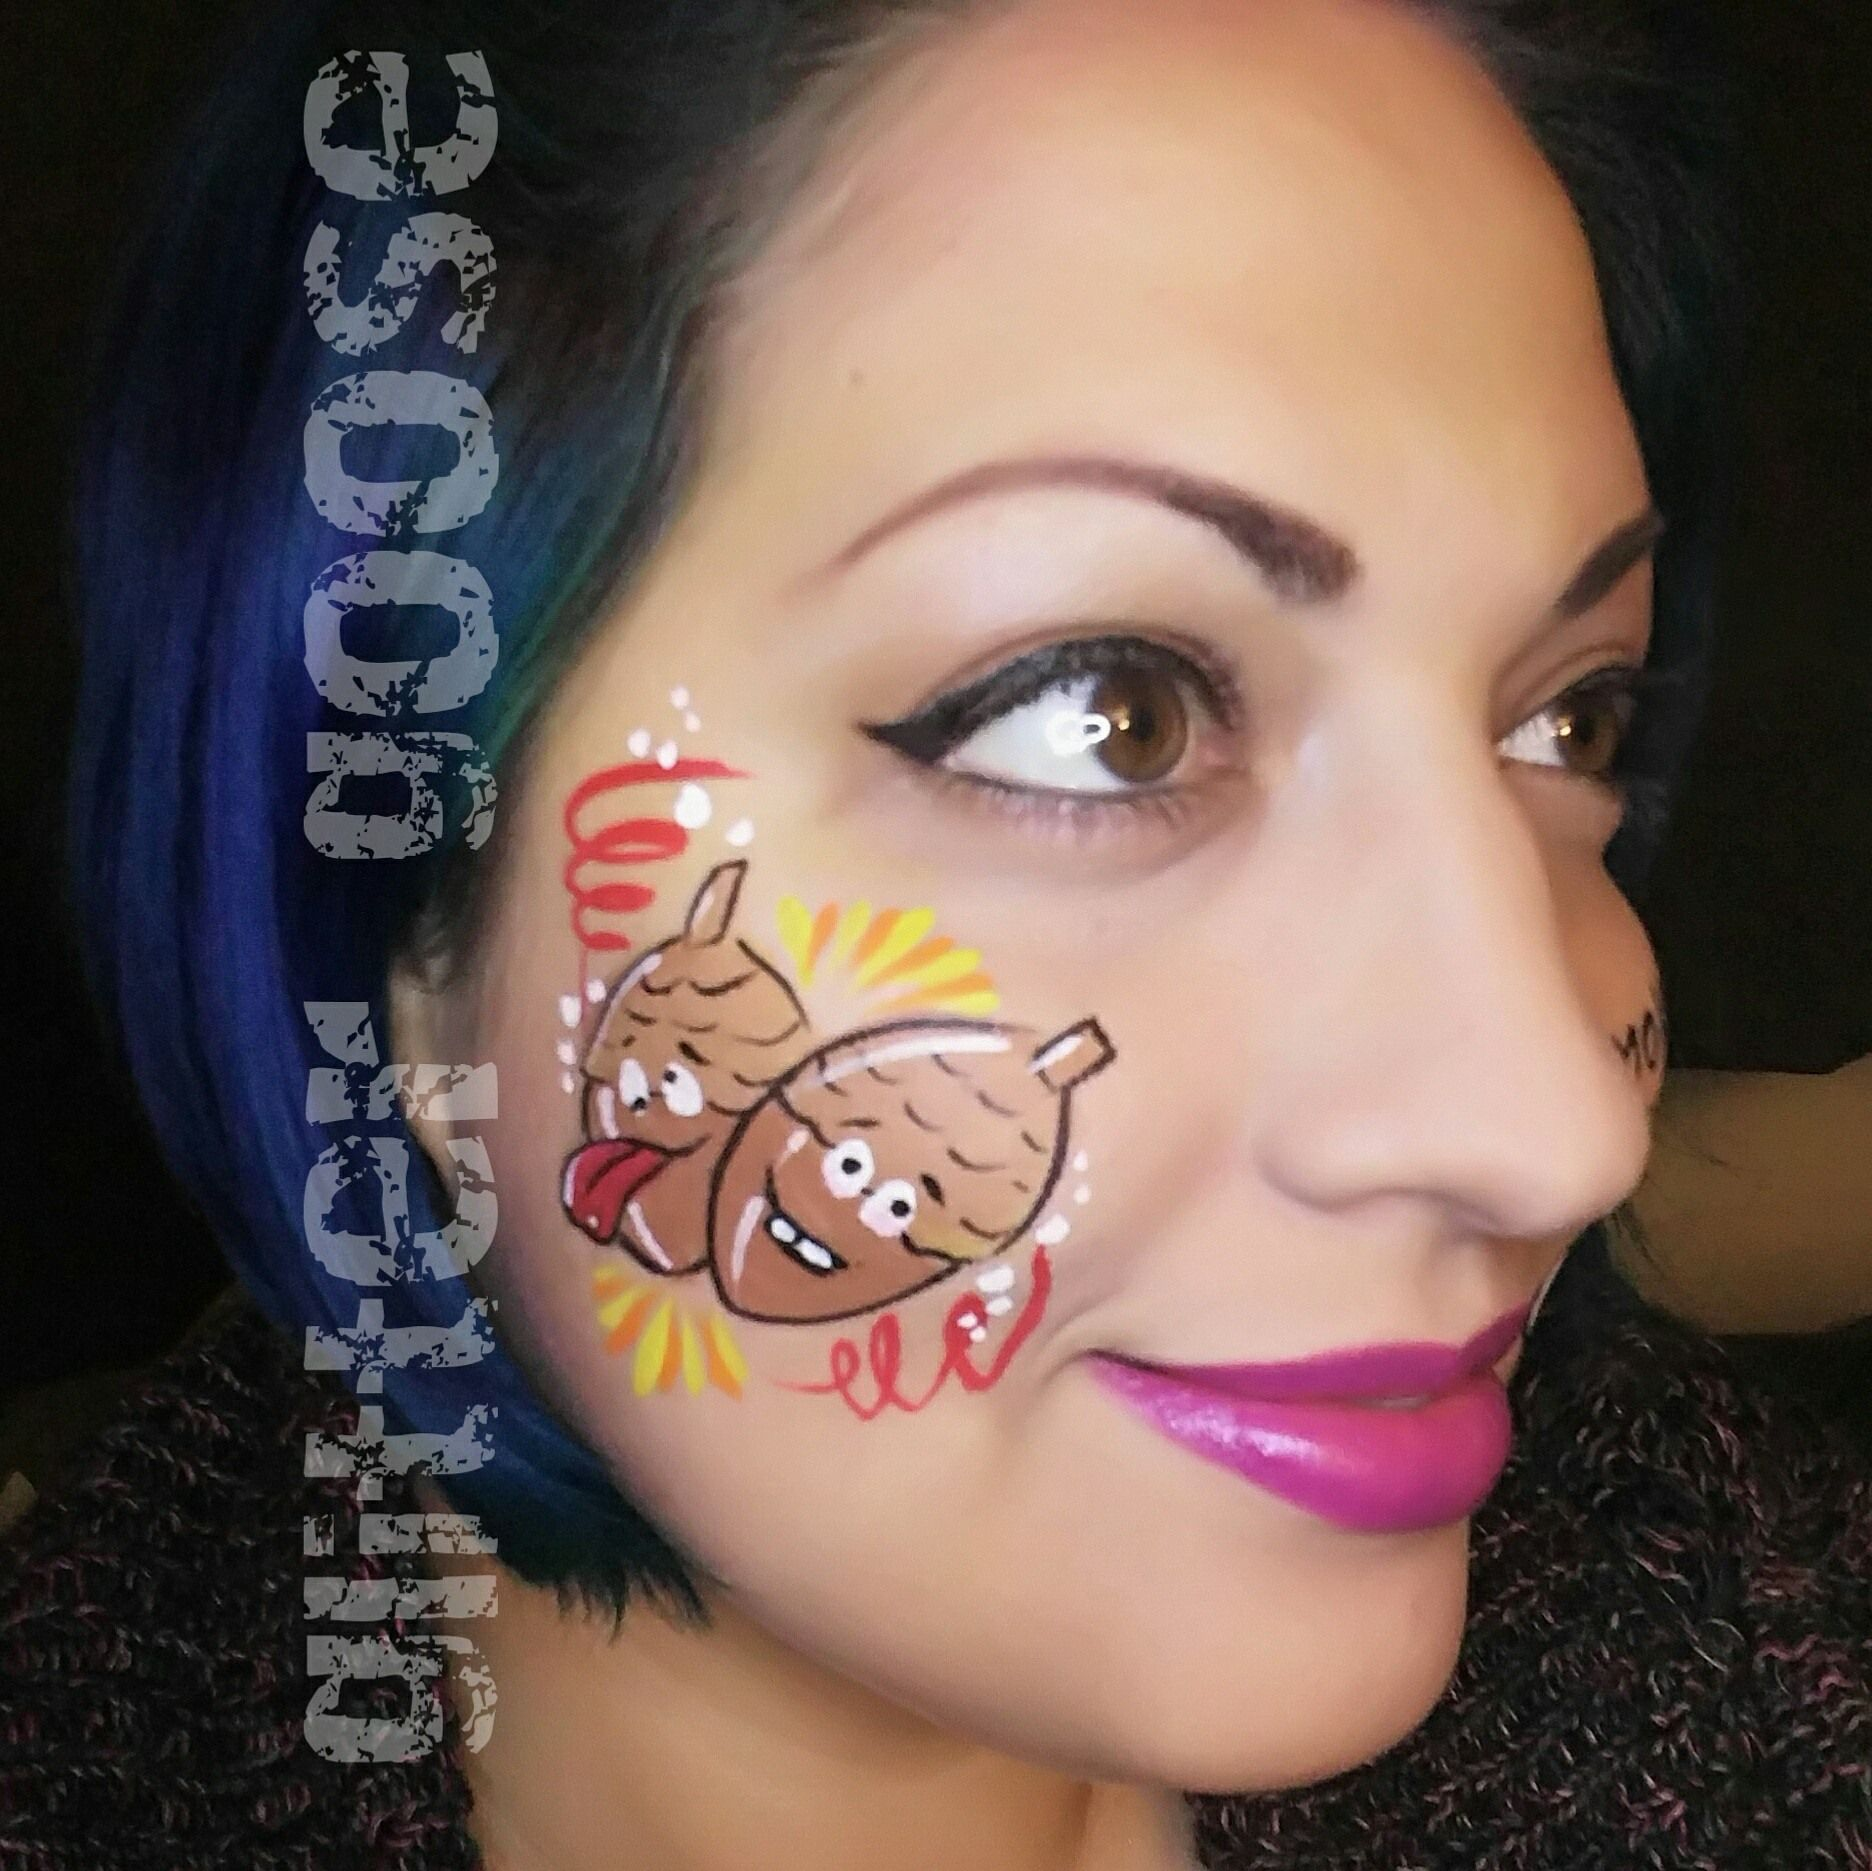 Crazy Acorns Face Painting By Glitter Goose Quick And Easy Thanksgiving Face Paint Ideas Acorn Art Autumn Fall Holiday Fast Fun Ghianda